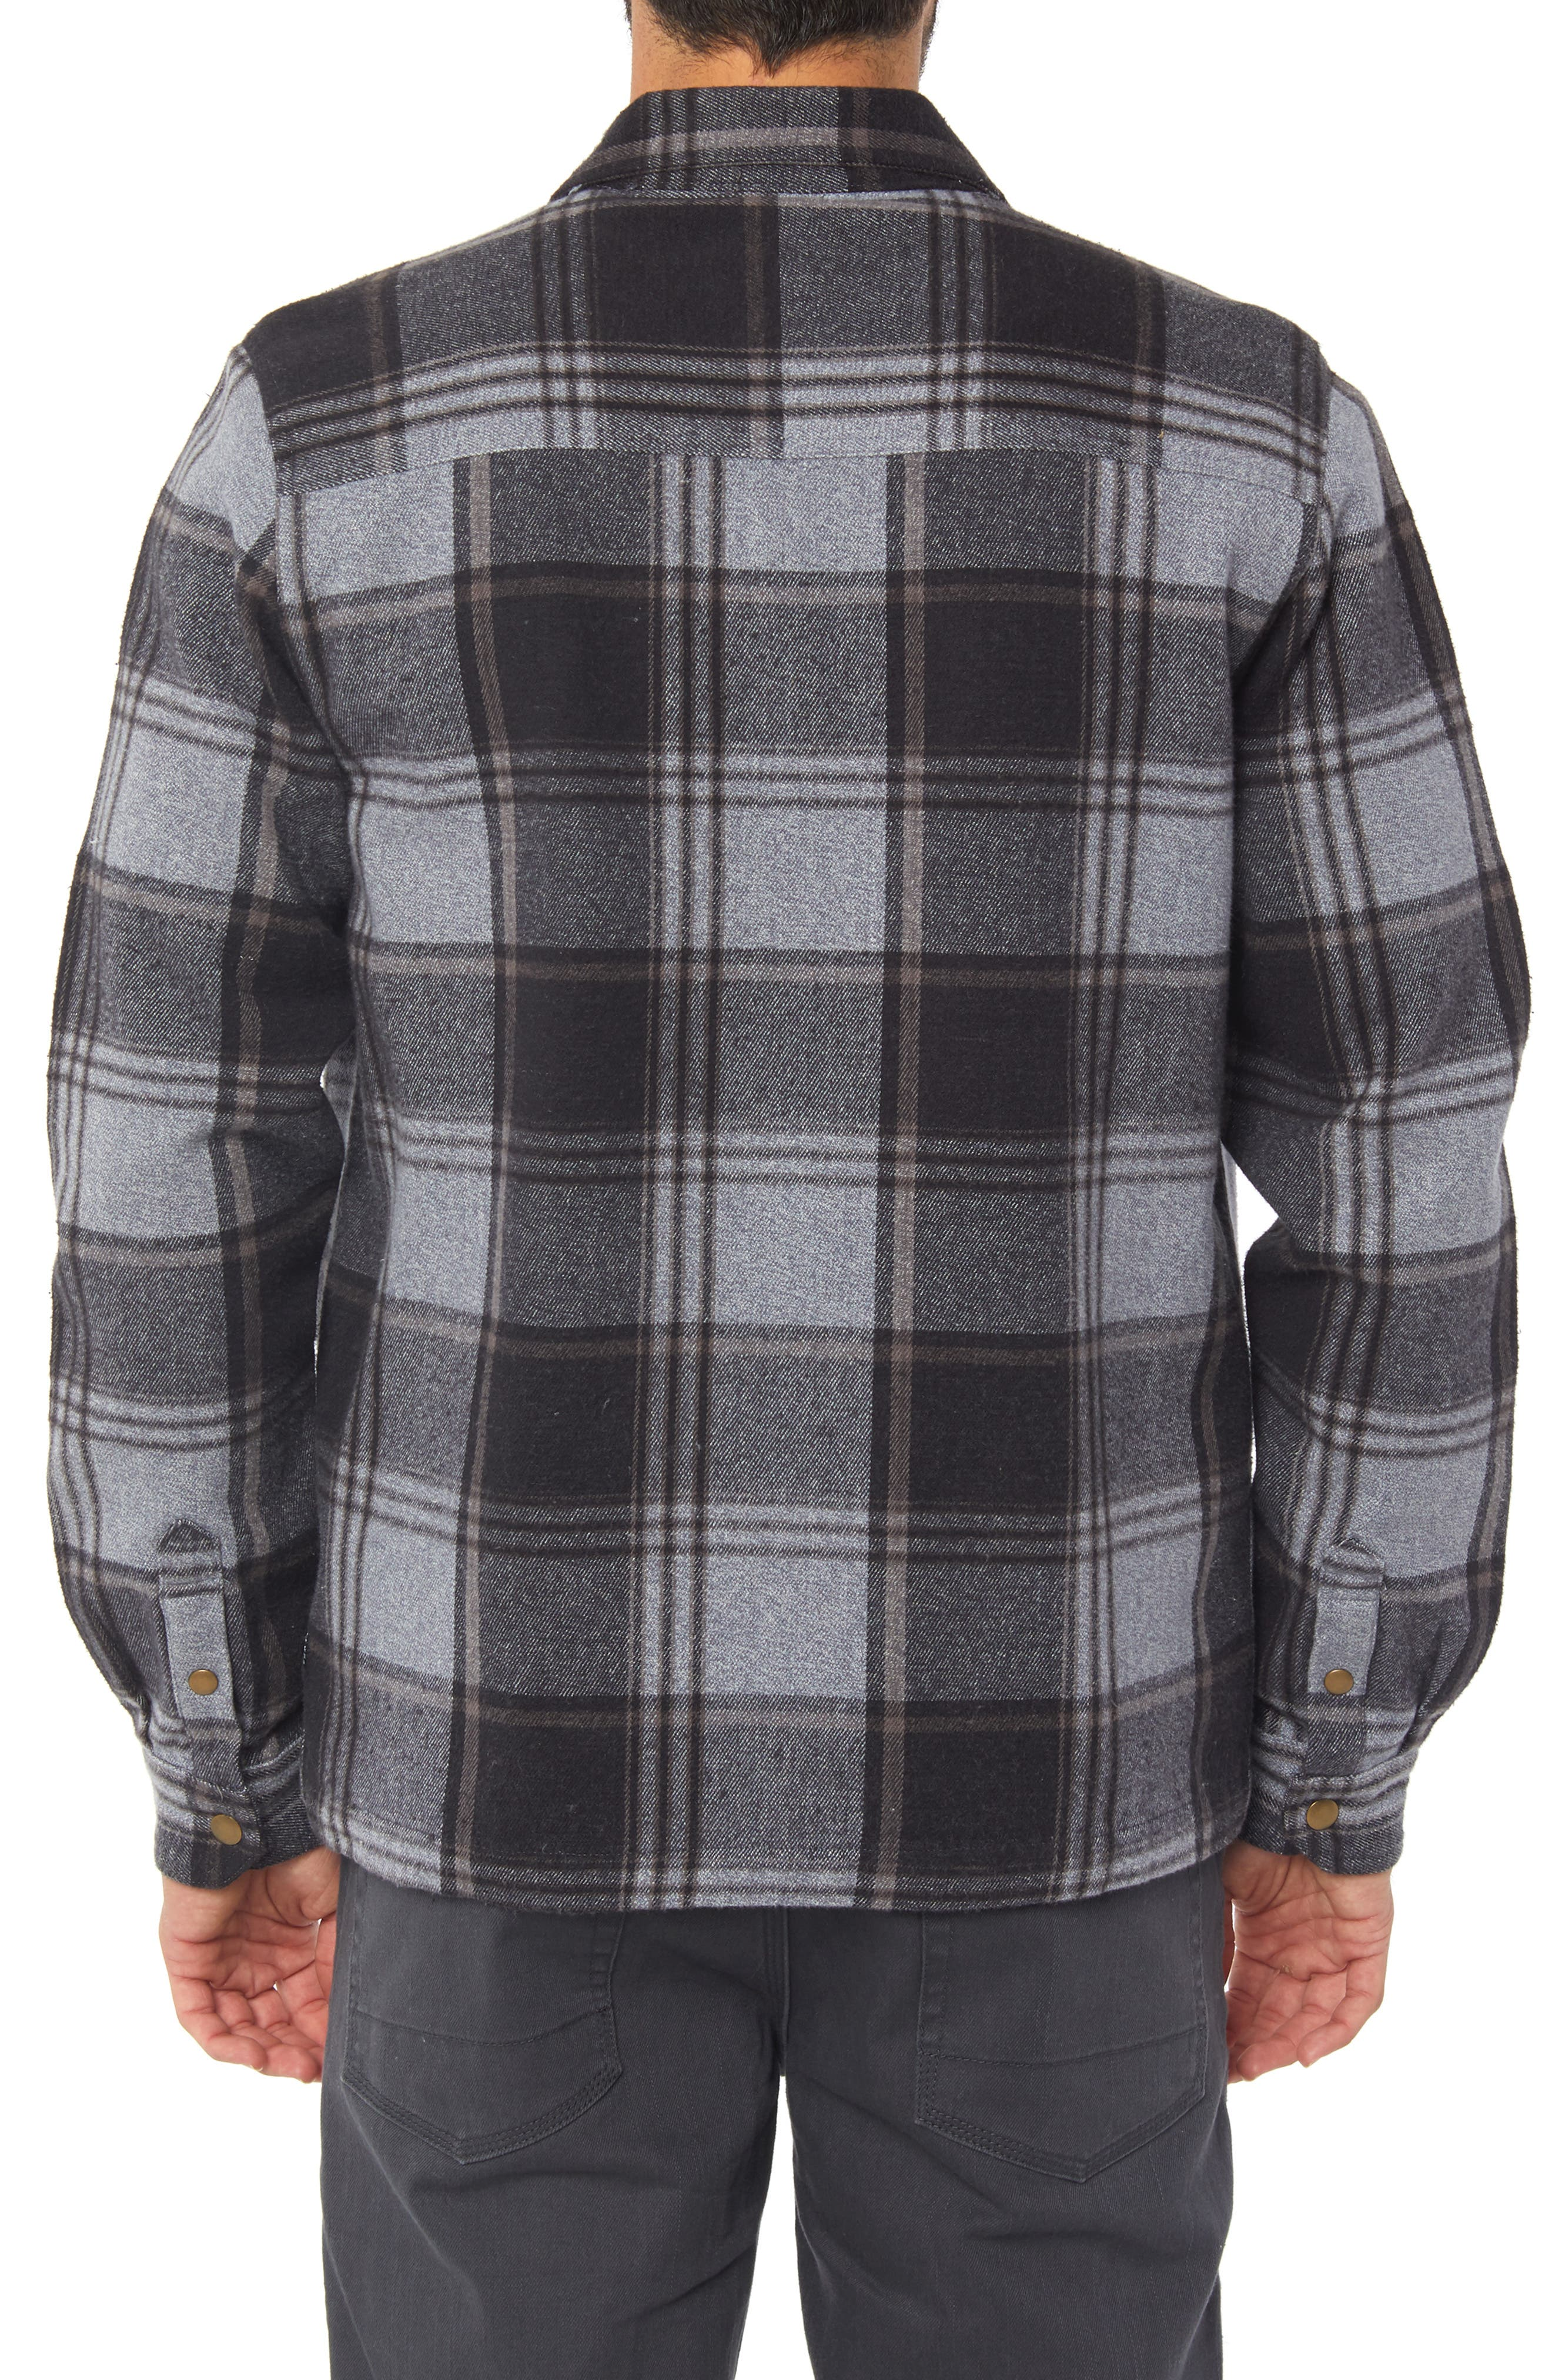 Lodge Flannel Shirt Jacket,                             Alternate thumbnail 2, color,                             ASPHALT